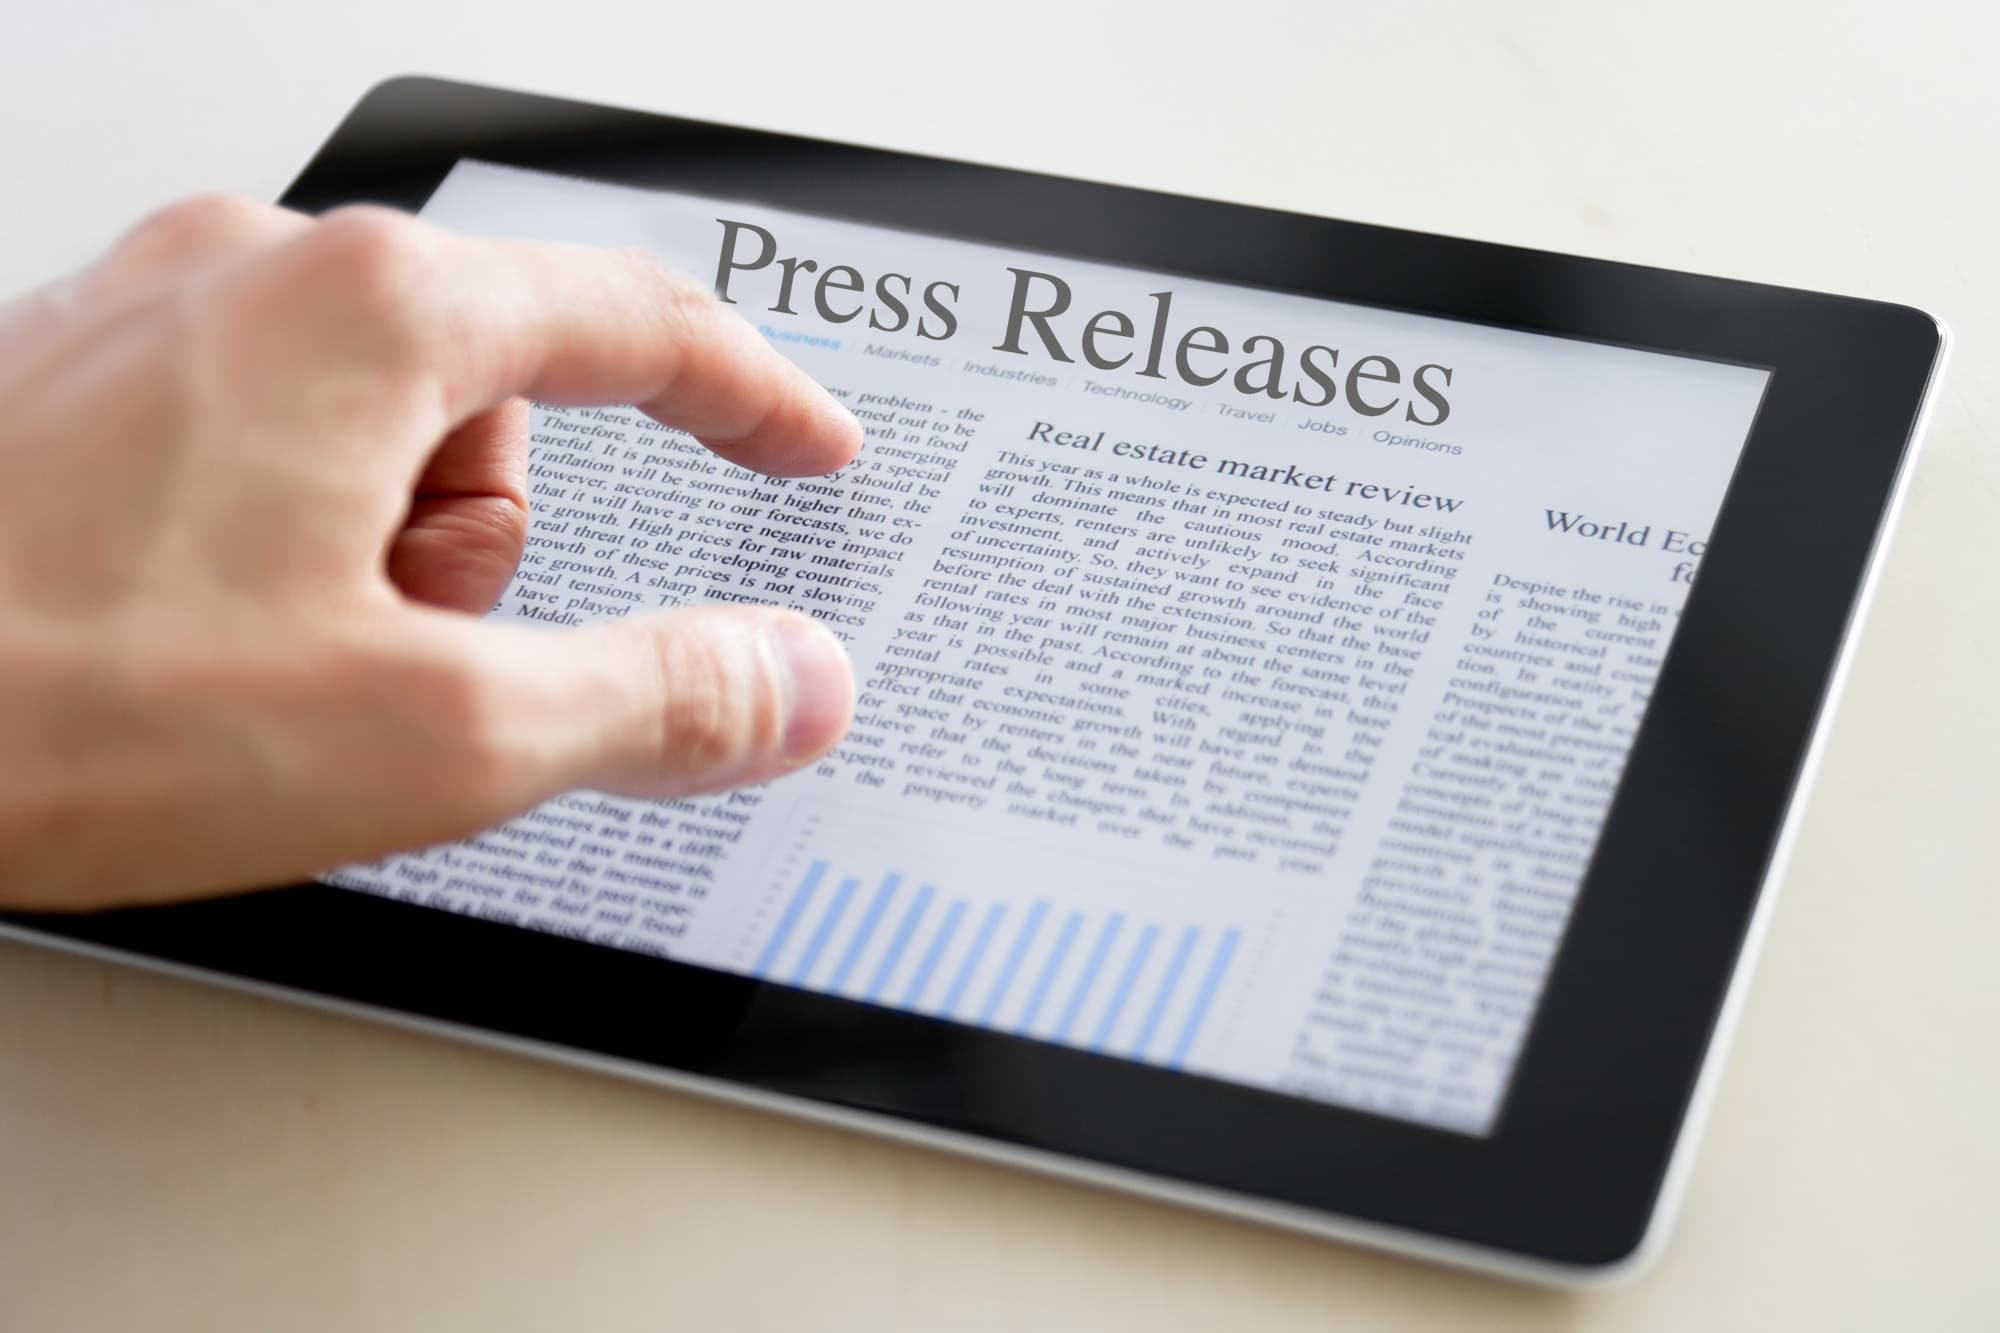 Other stakeholders Press Releases